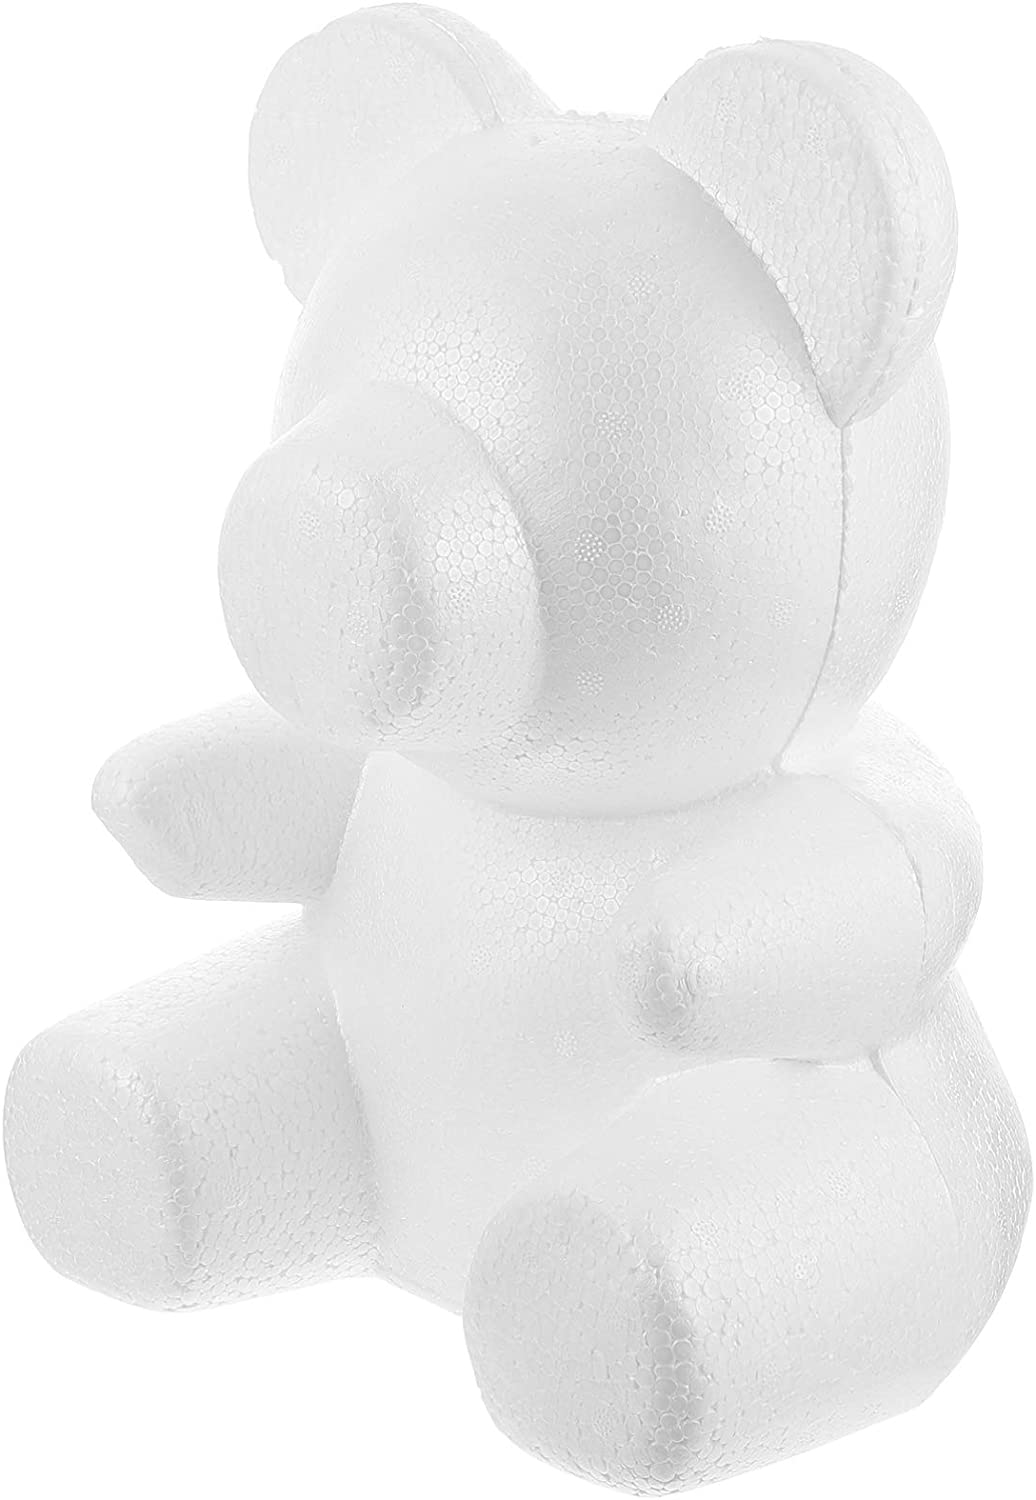 Be Outlet sale feature super welcome HEALLILY 1pc Foam Bear Bea Balls Polystyrene Rose